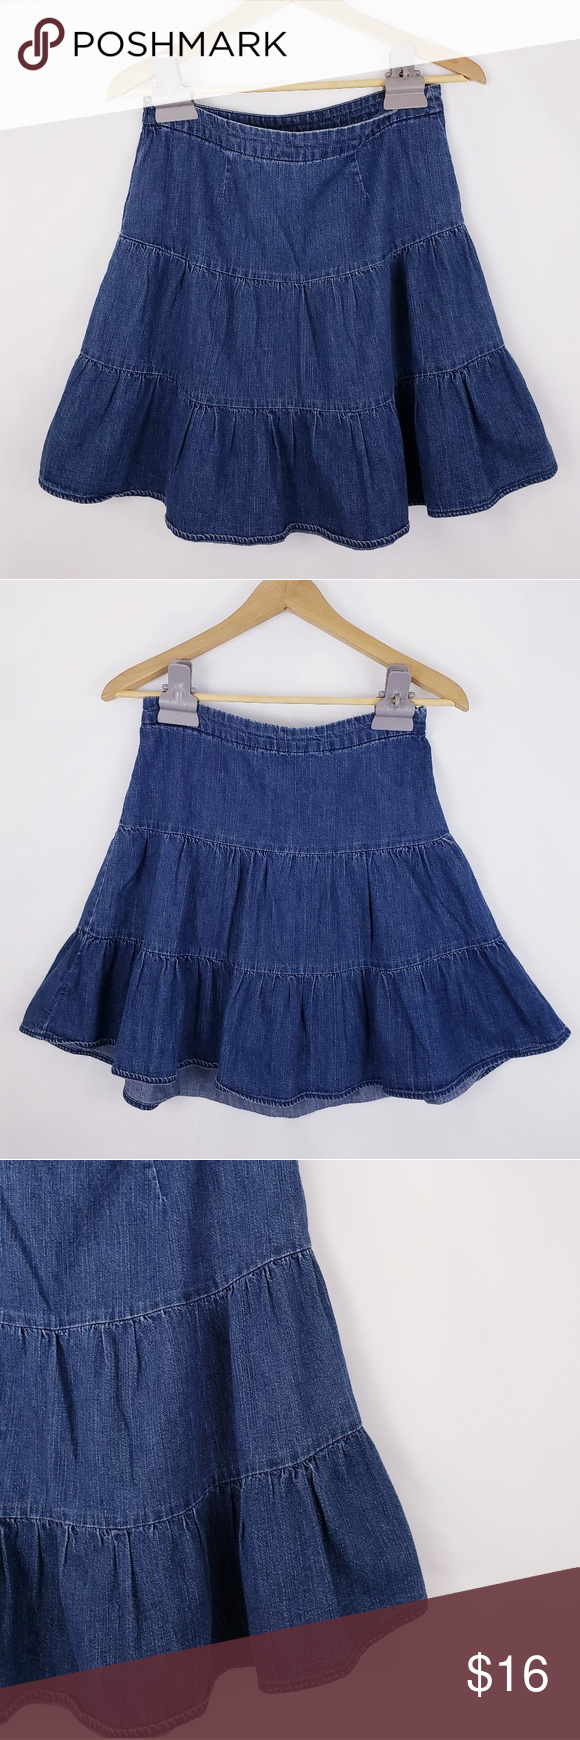 efc78e4f2 I just added this listing on Poshmark: Gap Tiered A-line Denim Skirt Size  1/Small. #shopmycloset #poshmark #fashion #shopping #style #forsale #GAP  #Dresses ...